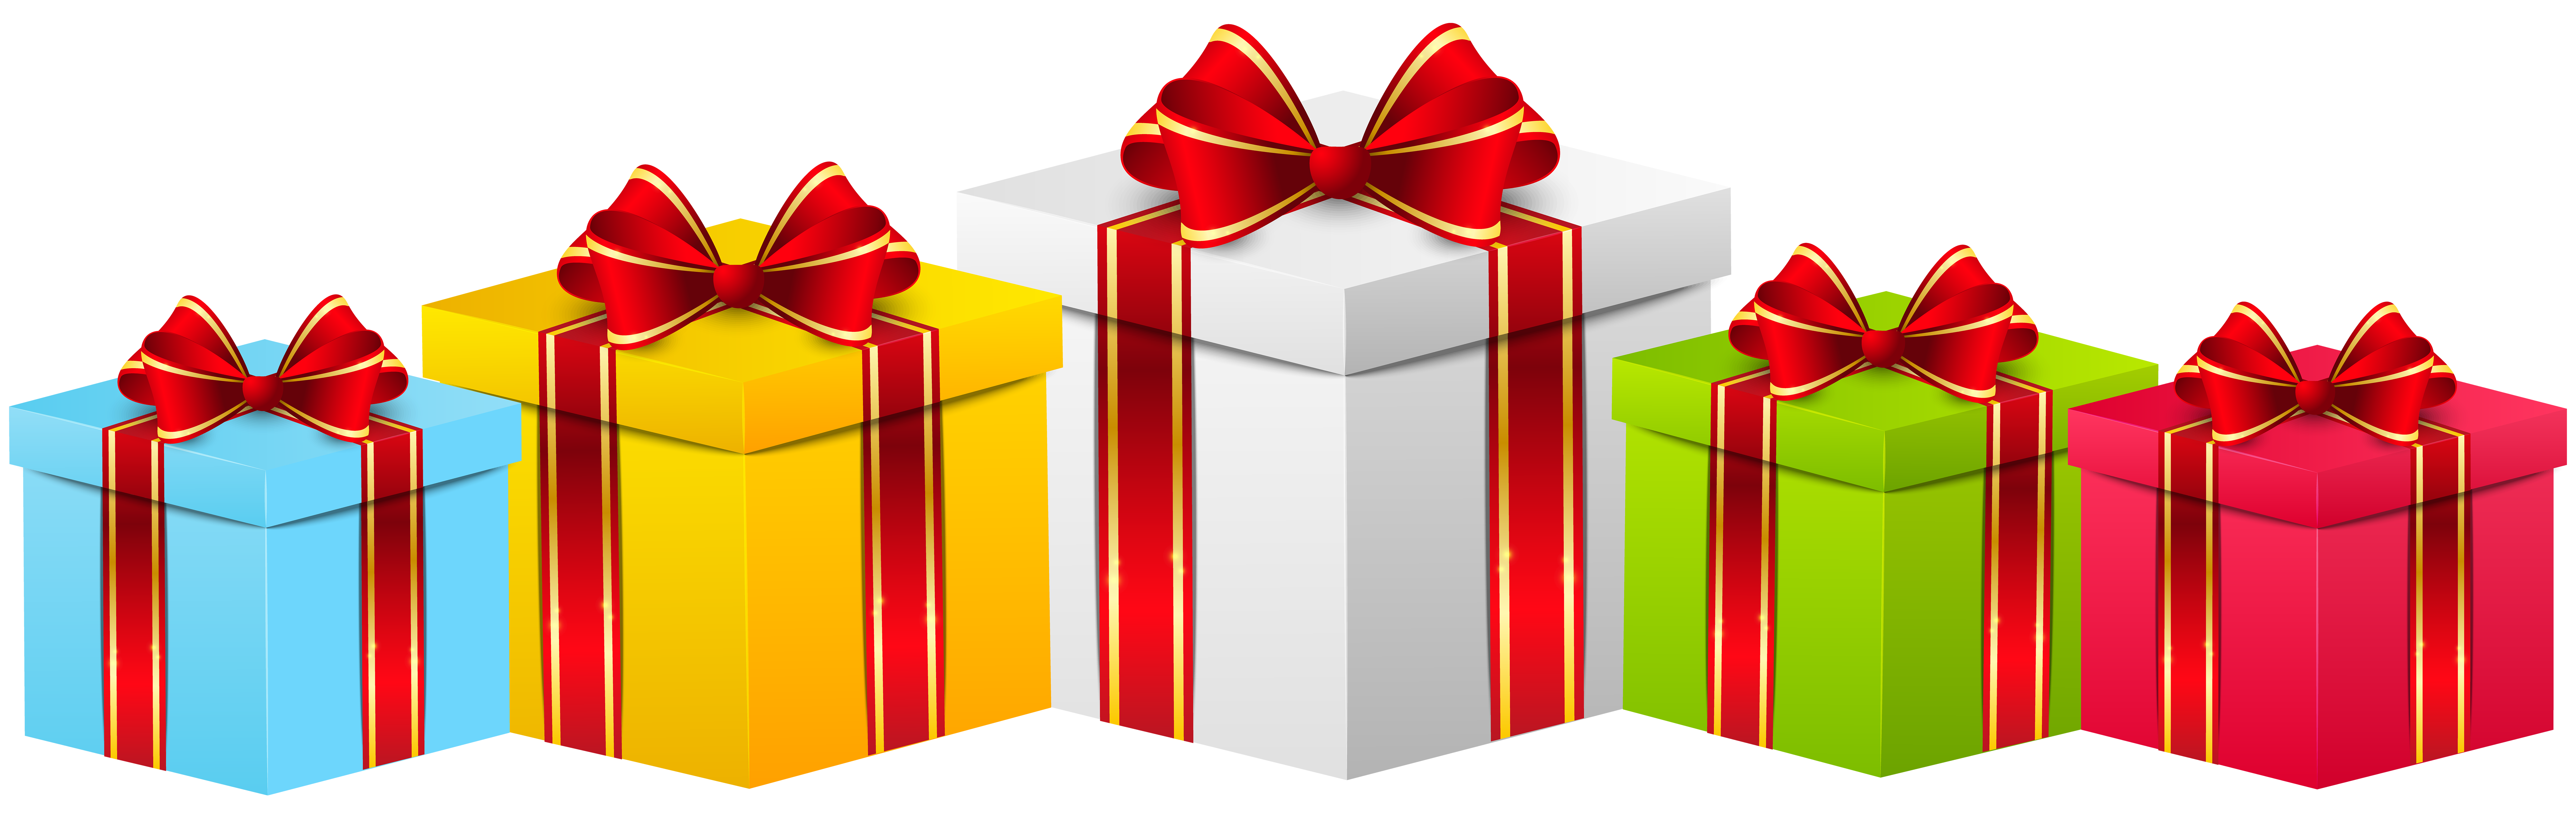 royalty free Gift boxes transparent png. Gifts clipart.